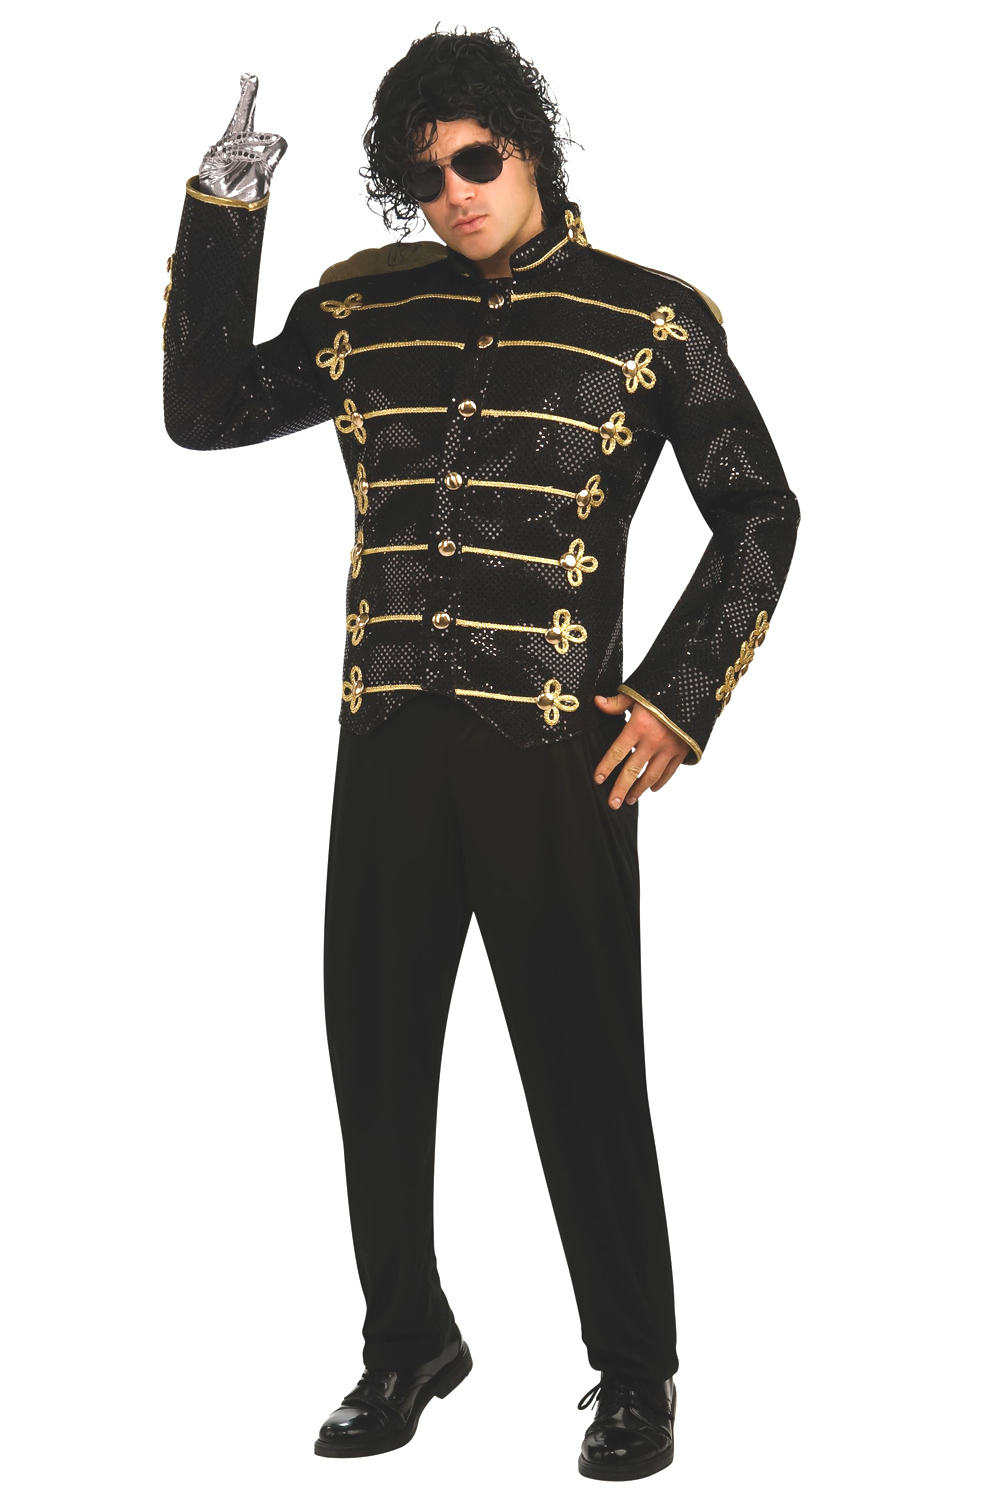 Michael Jackson Deluxe Black Military Jacket Adult Costume  sc 1 st  Pure Costumes & Michael Jackson Deluxe Black Military Jacket Adult Costume ...